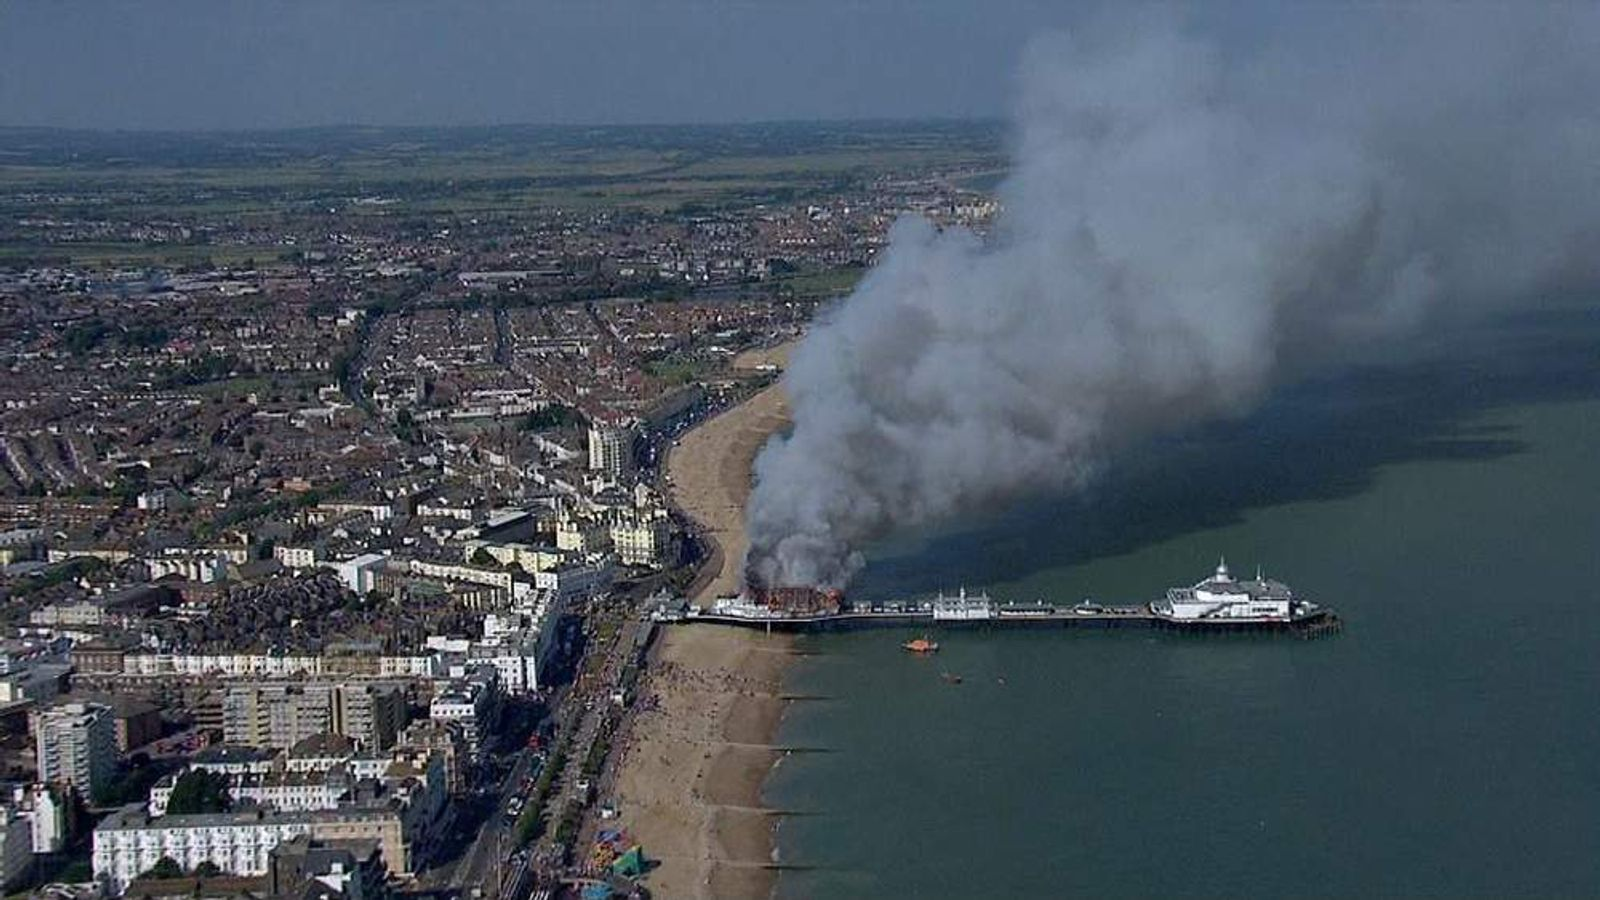 Eastbourne Pier damaged by fire